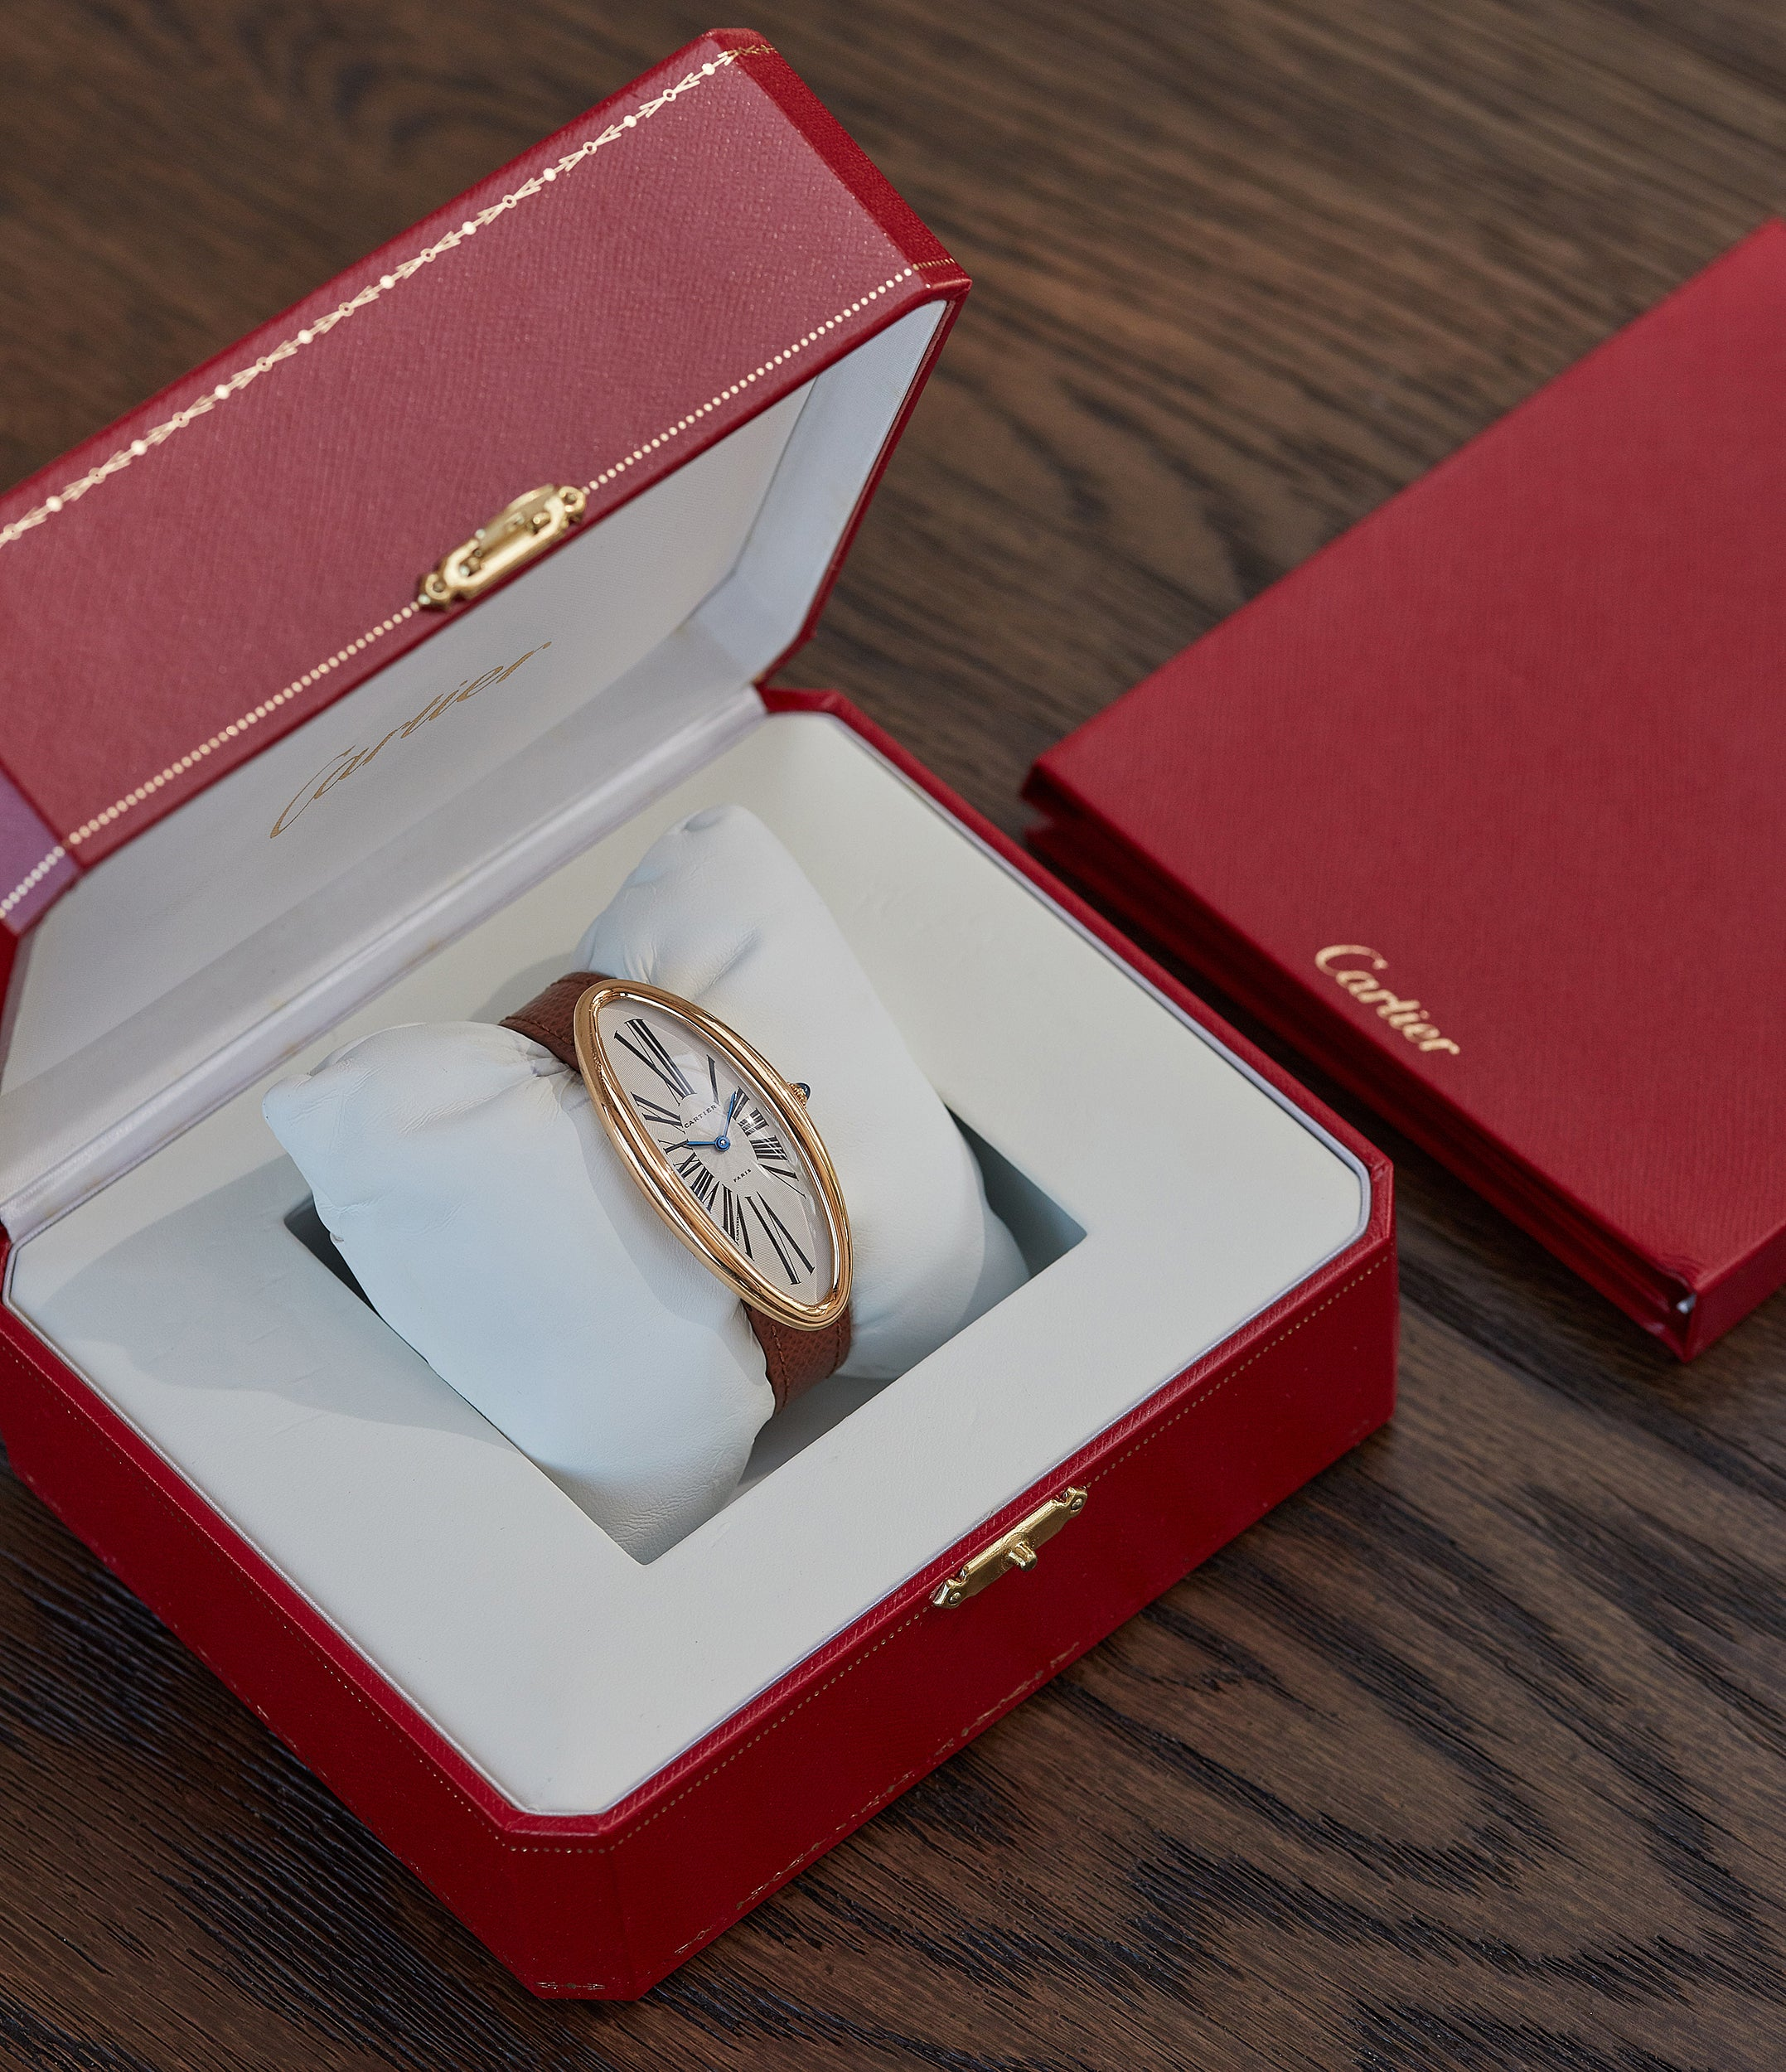 pre-owned Cartier Baignoire Allongée vintage pink gold time-only dress watch for sale online A Collected Man London British specialist of rare watches